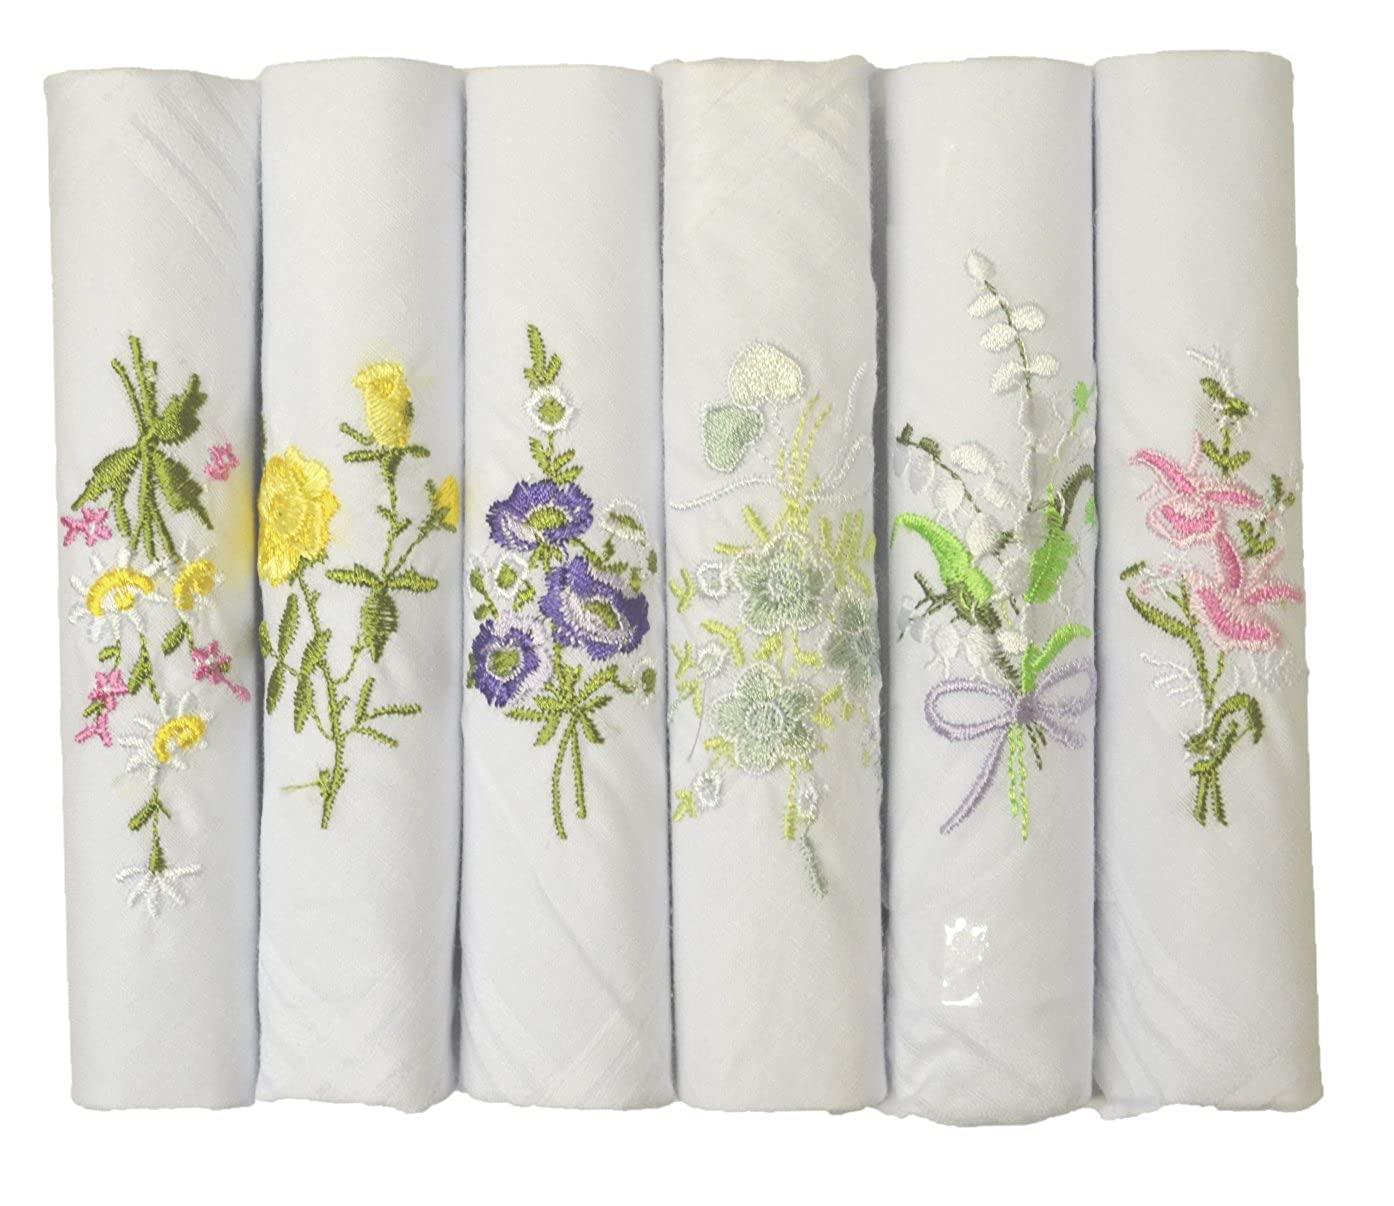 6 Pack Womens/Ladies White Floral Embroidered Handkerchiefs 100% Pure Cotton, In & Gift Box